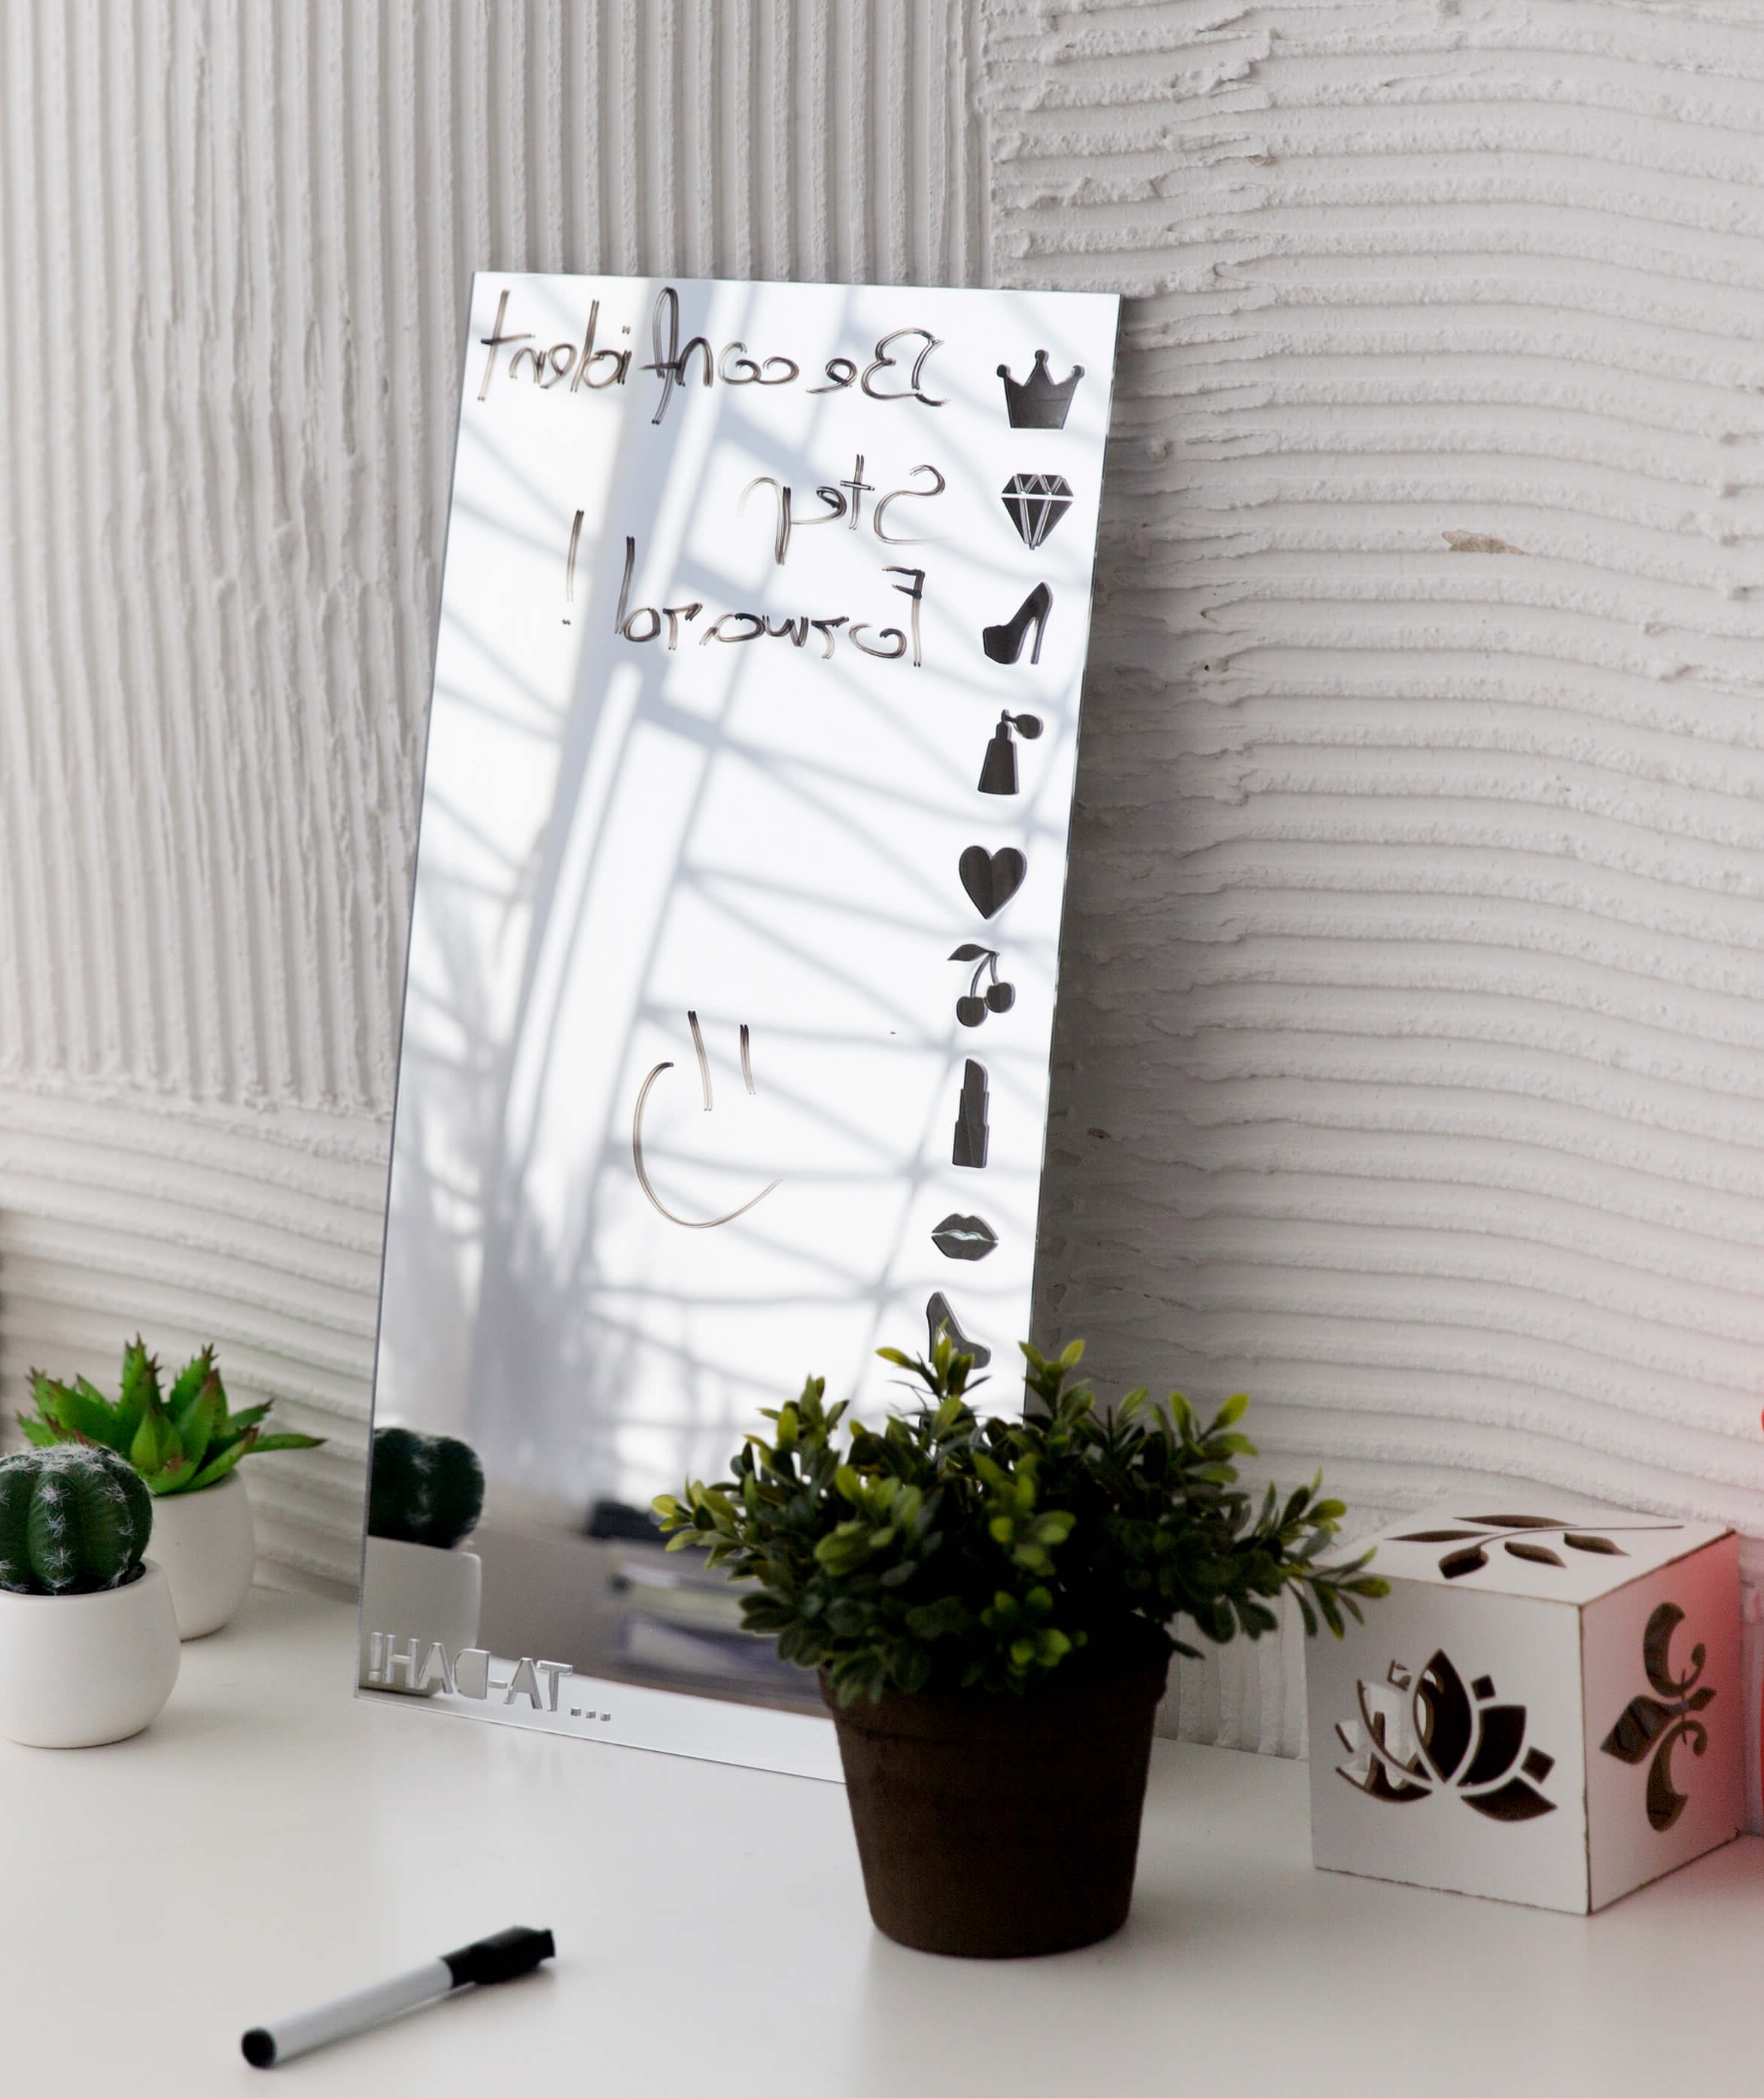 Acrylic Wall Mirrors For Latest Acrylic Mirror Wall Sticker – Ta Dah! – 14.99€ (Gallery 7 of 20)